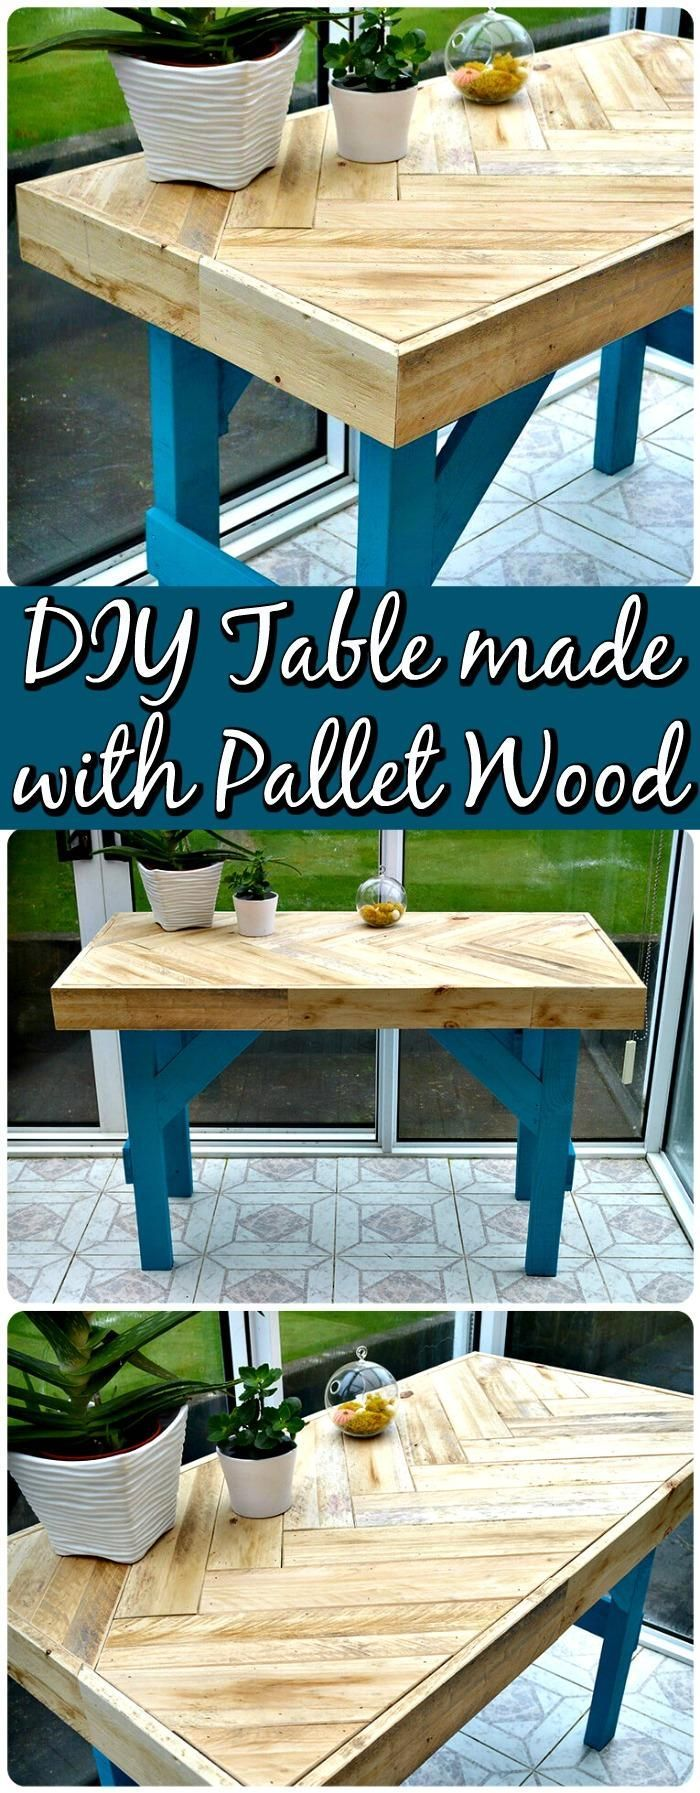 Wooden pallet craft projects - Chevron Wooden Pallet Table 150 Best Diy Pallet Projects And Pallet Furniture Crafts Page